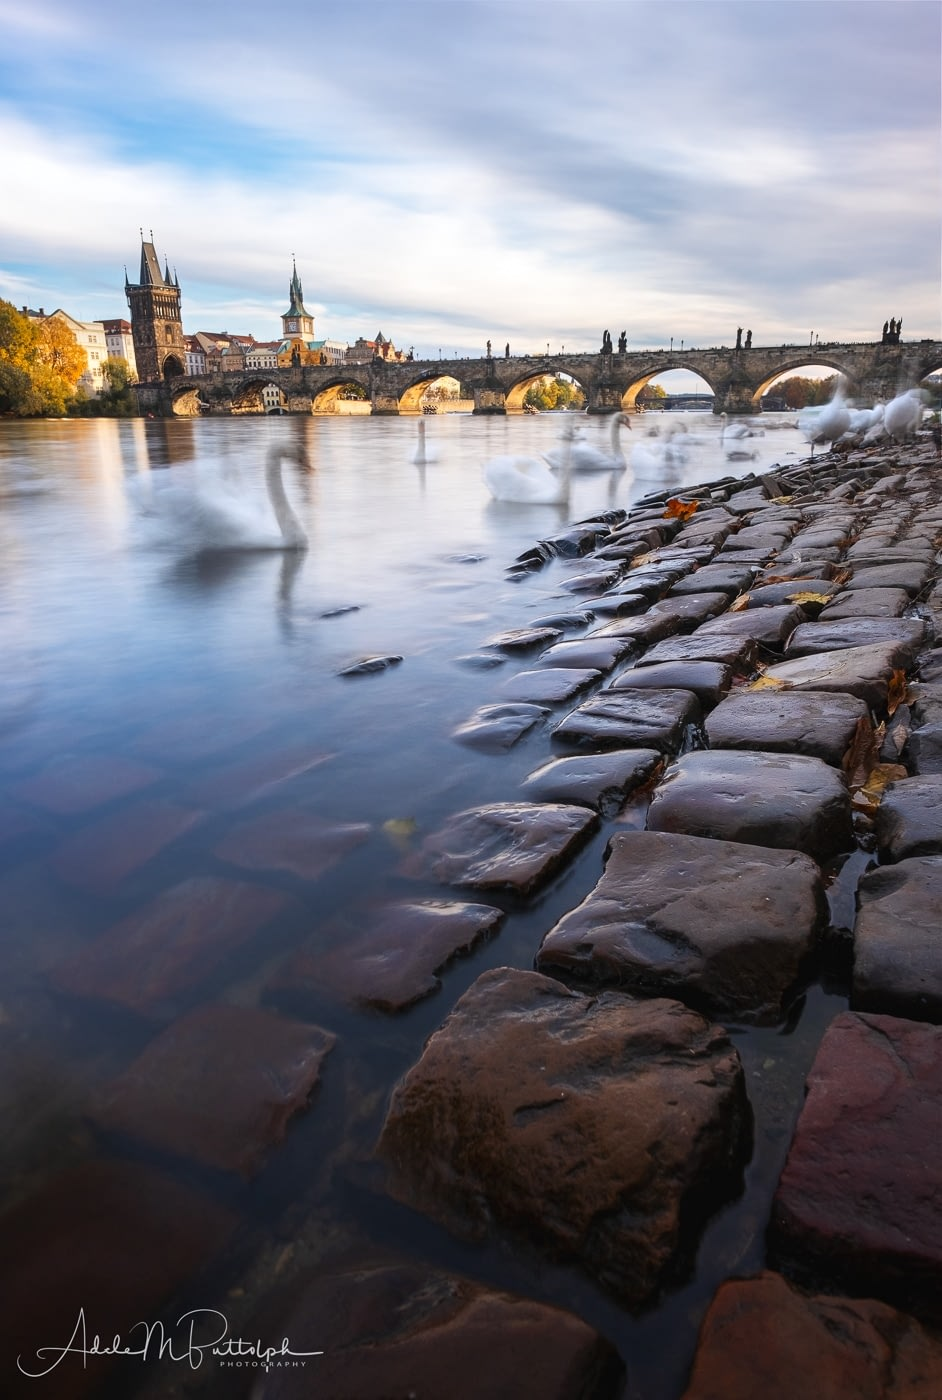 Bank of the Vltava River by Adele Buttolph